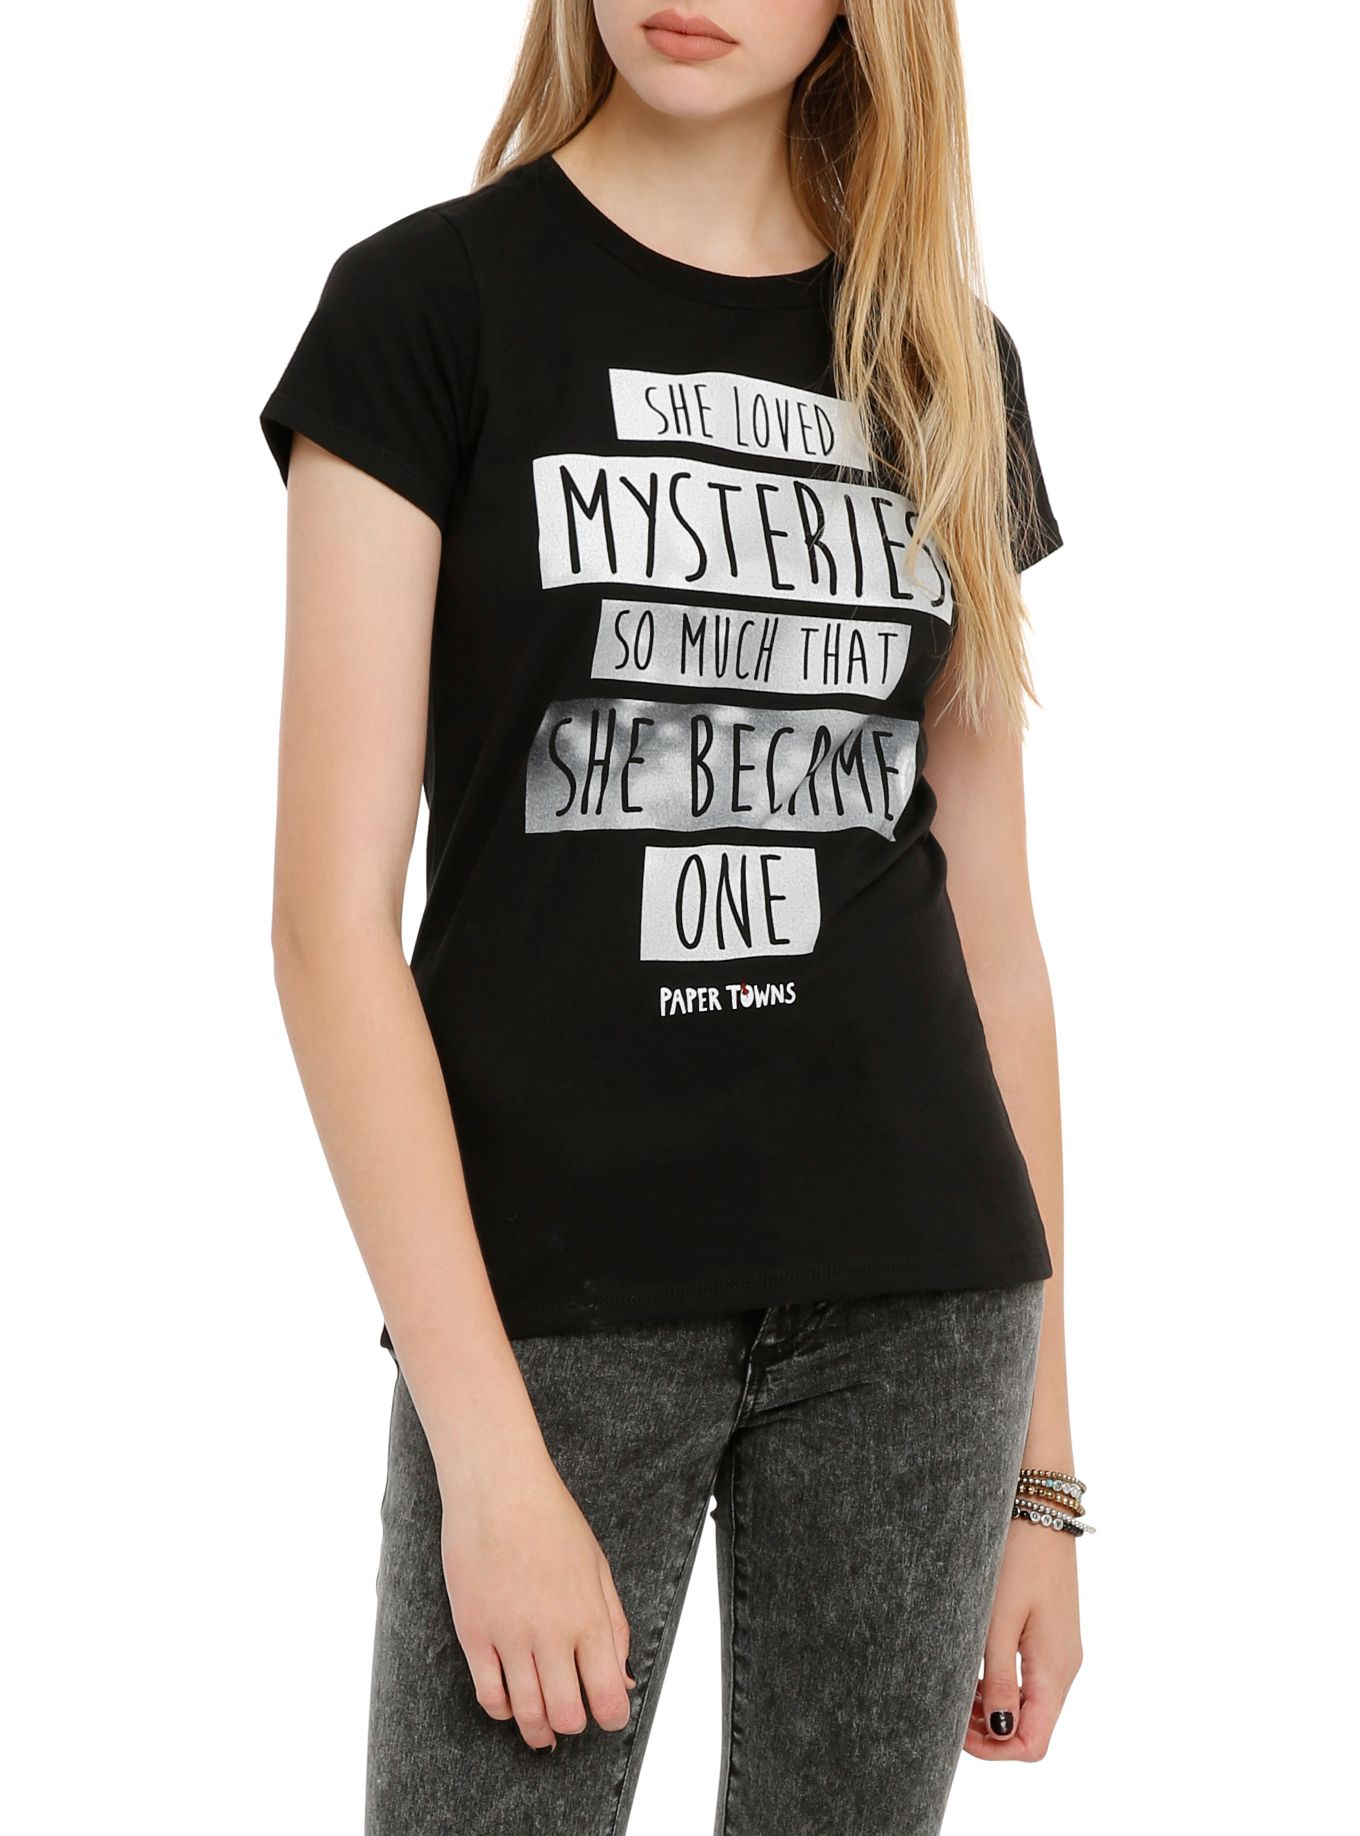 Black t shirts with quotes - Paper Towns Mysteries Girls T Shirt Hot Topic